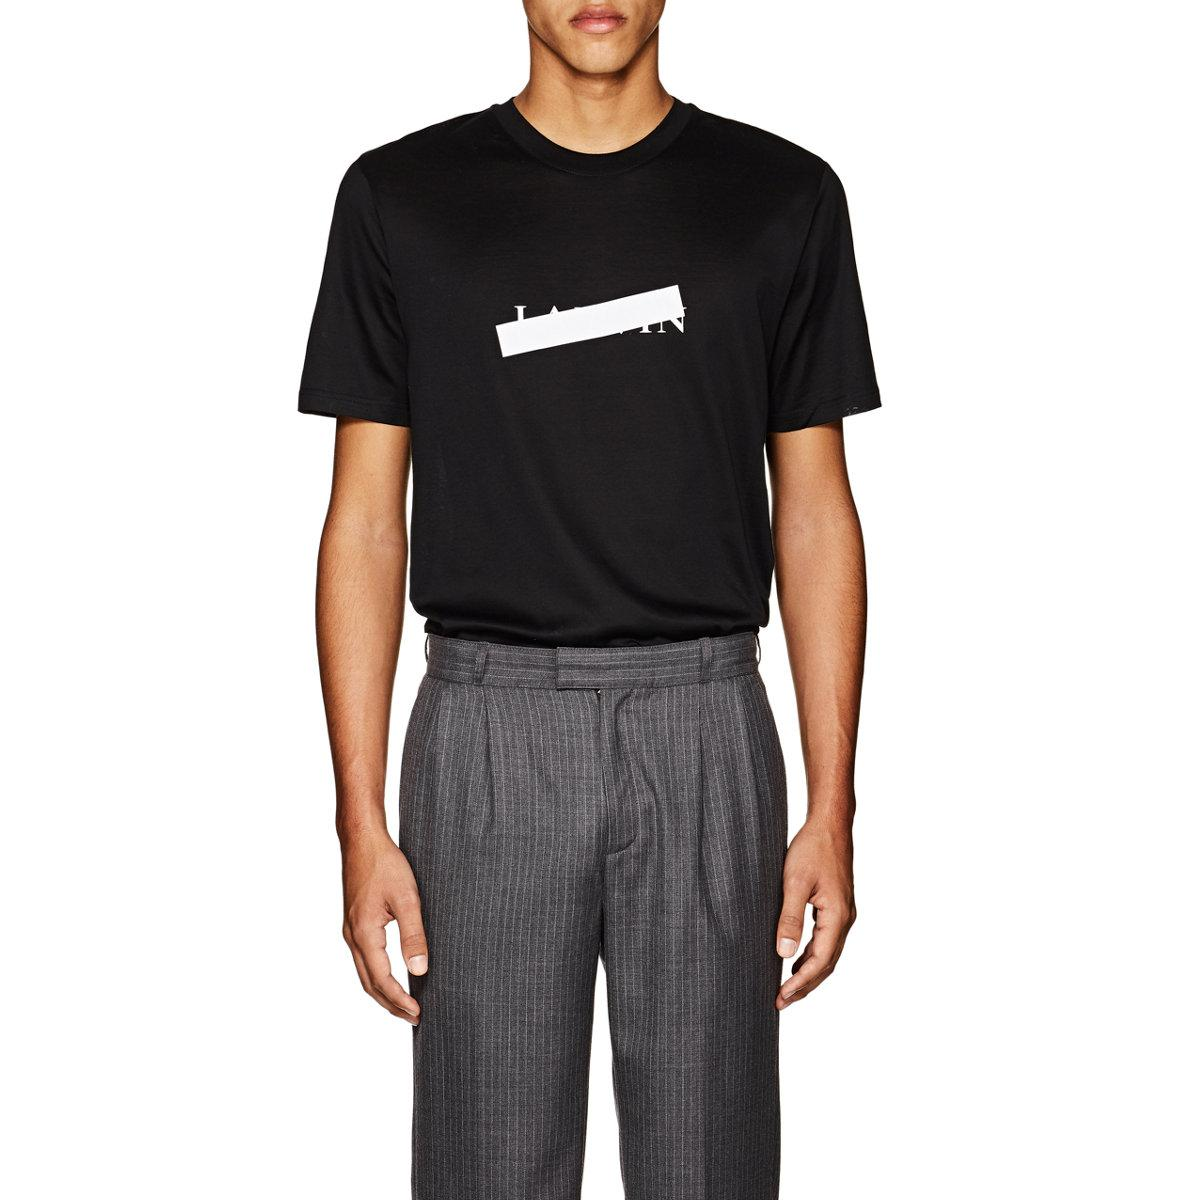 Really Mens Crossed-Out-Logo Cotton T-Shirt Lanvin Free Shipping Visit New Outlet High Quality Many Kinds Of CvXBAV